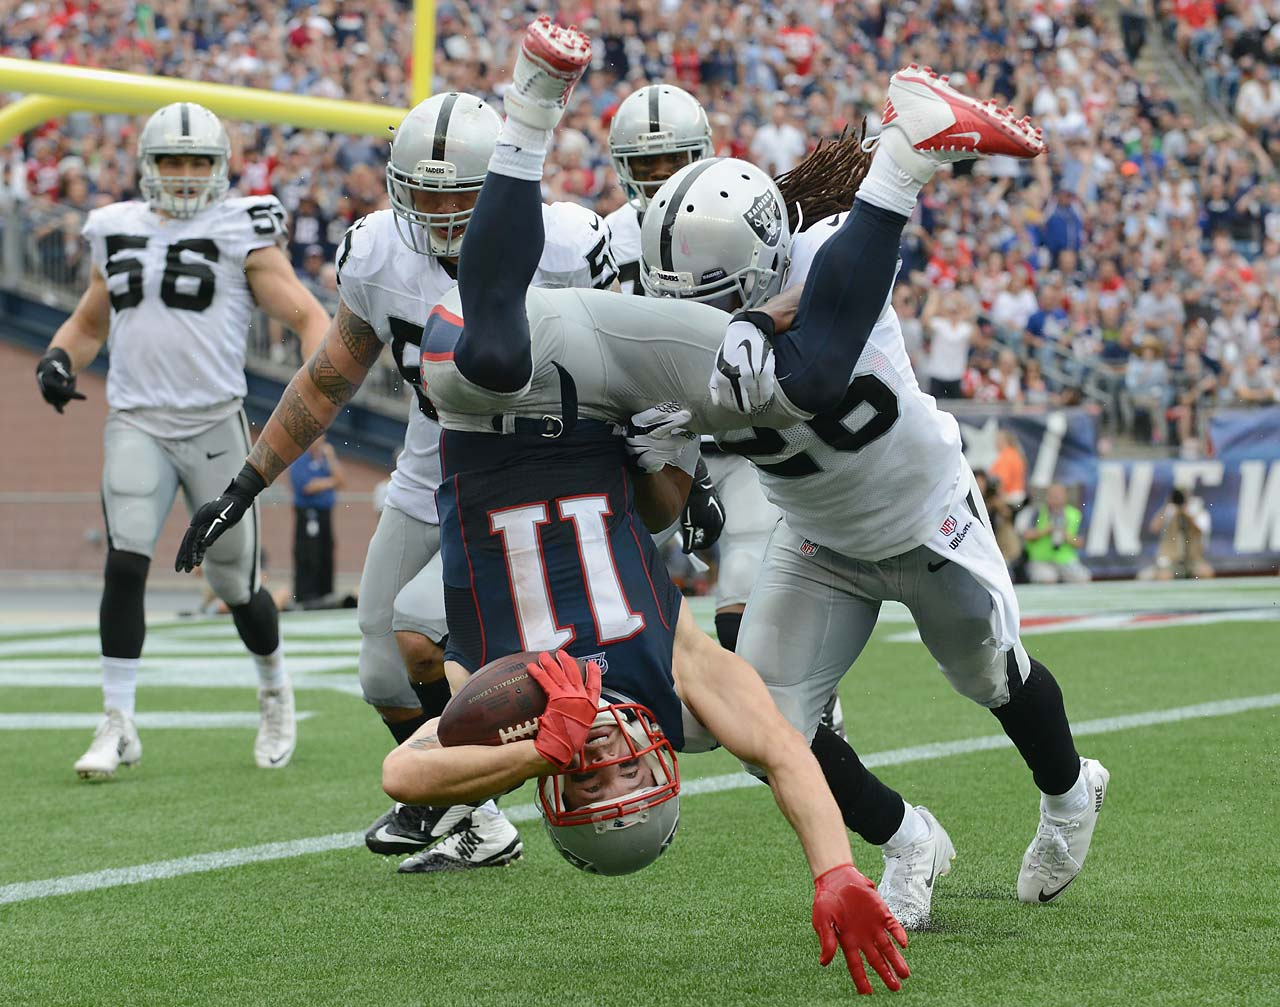 Julian Edelman of the New England Patriots is tackled during the fourth quarter against the Oakland Raiders.